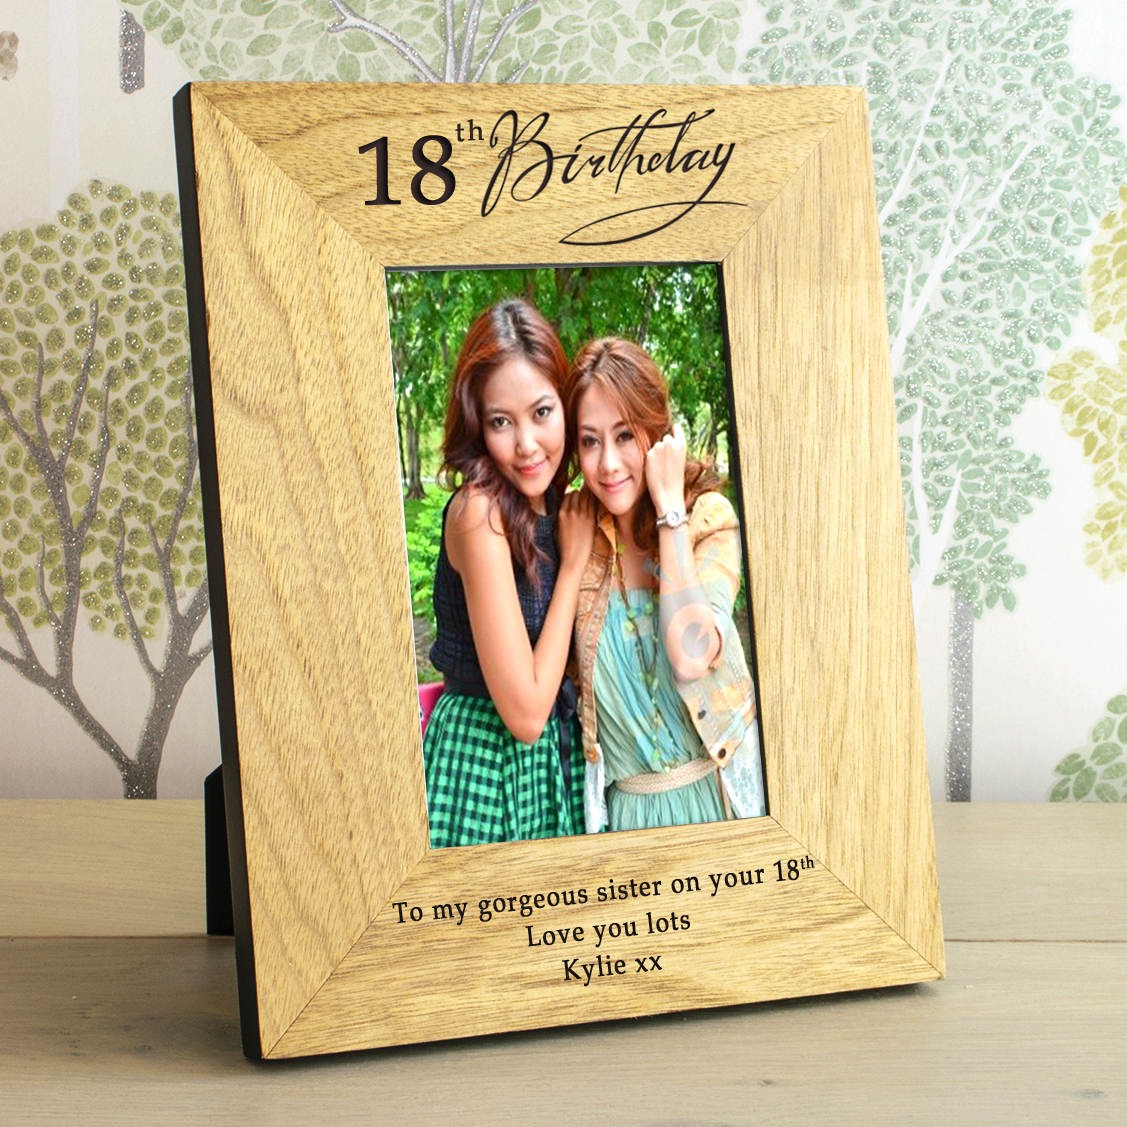 18th Birthday Wooden Personalised Photo Frame The Gift Experience